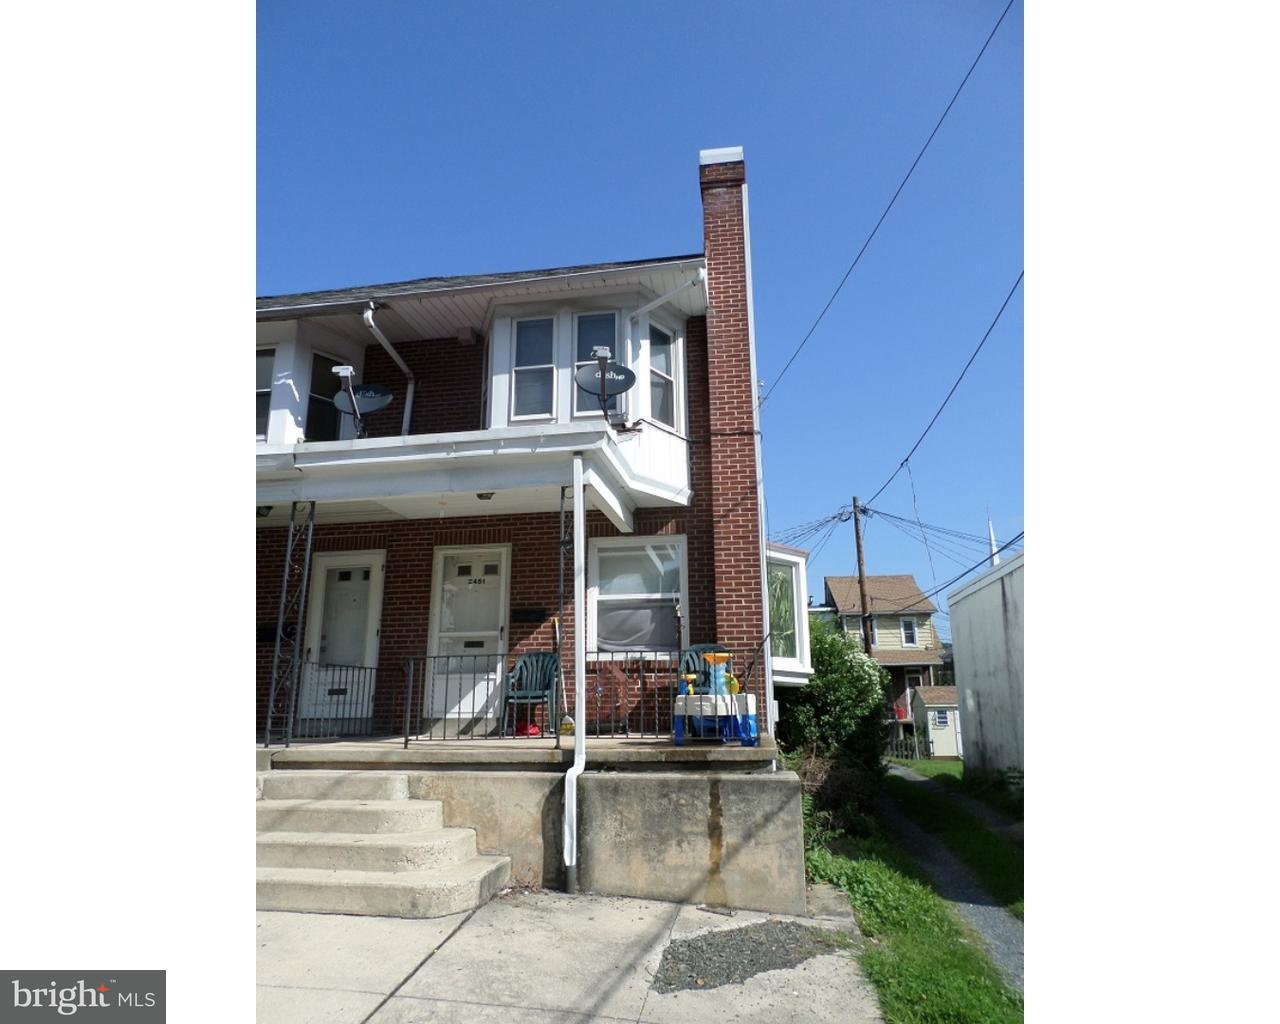 2451 GRANT ST, READING - Listed at $75,900, READING